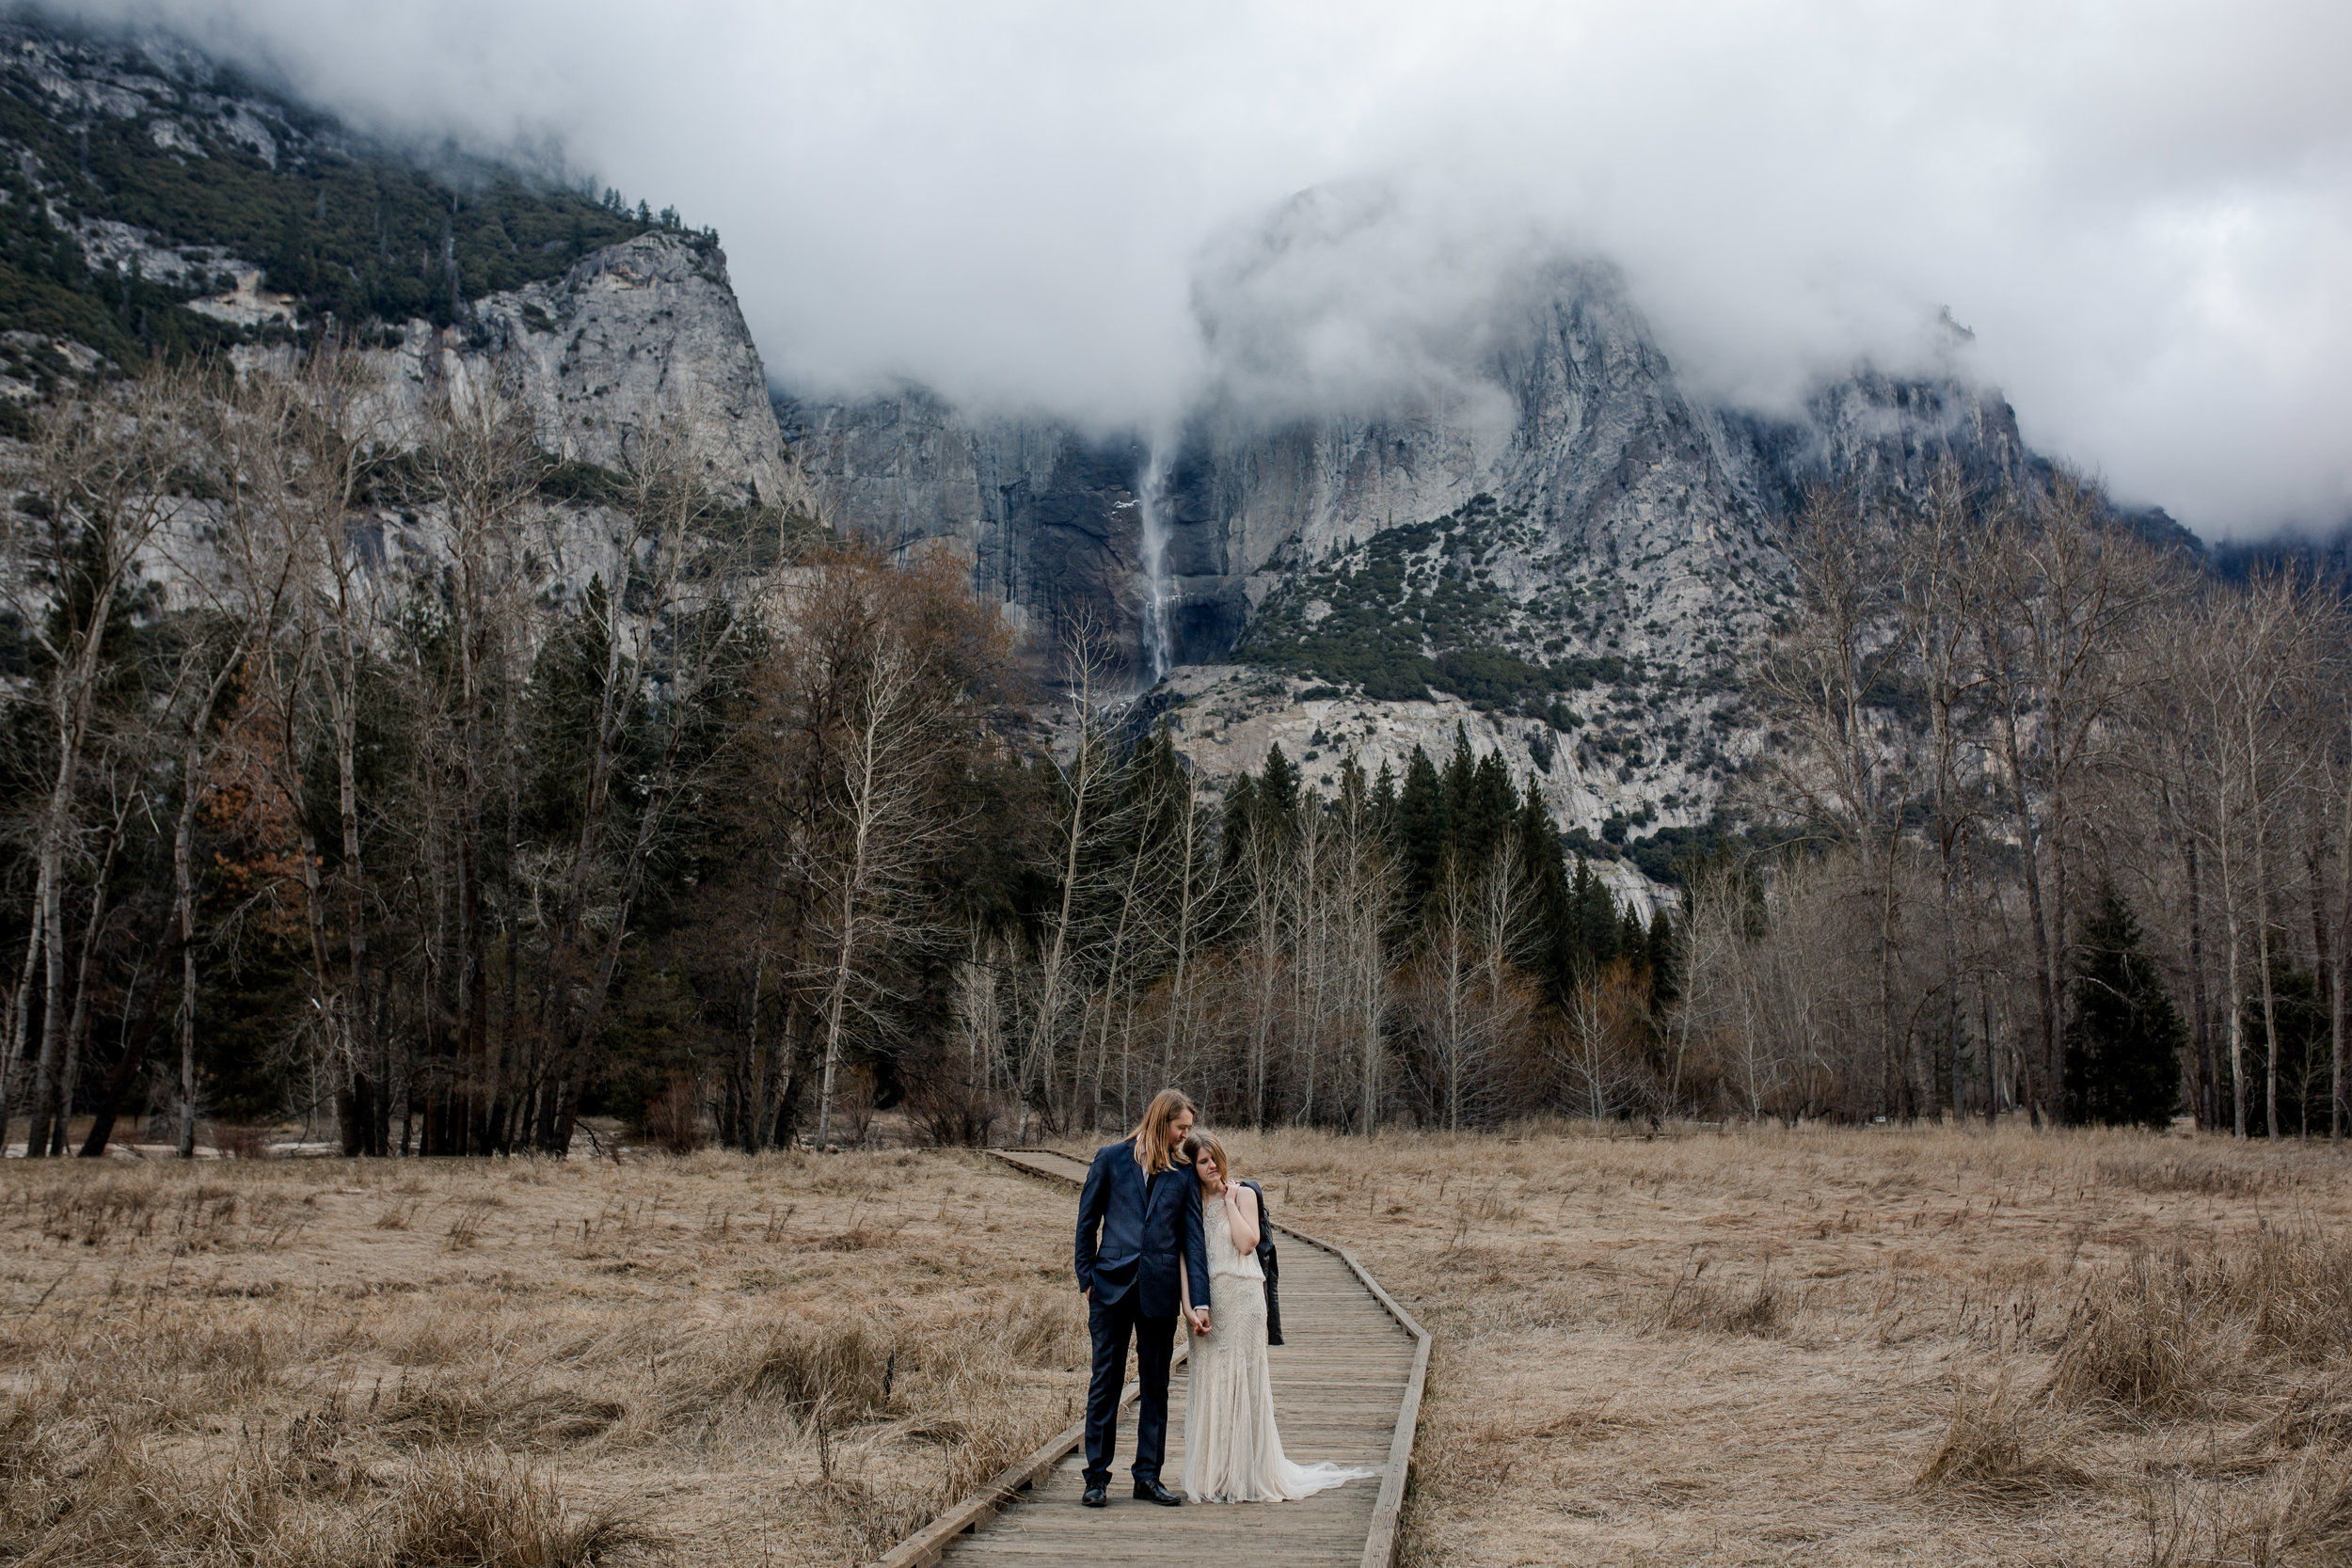 nicole-daacke-photography-yousemite-national-park-elopement-photographer-winter-cloud-moody-elope-inspiration-yosemite-valley-tunnel-view-winter-cloud-fog-weather-wedding-photos-94.jpg